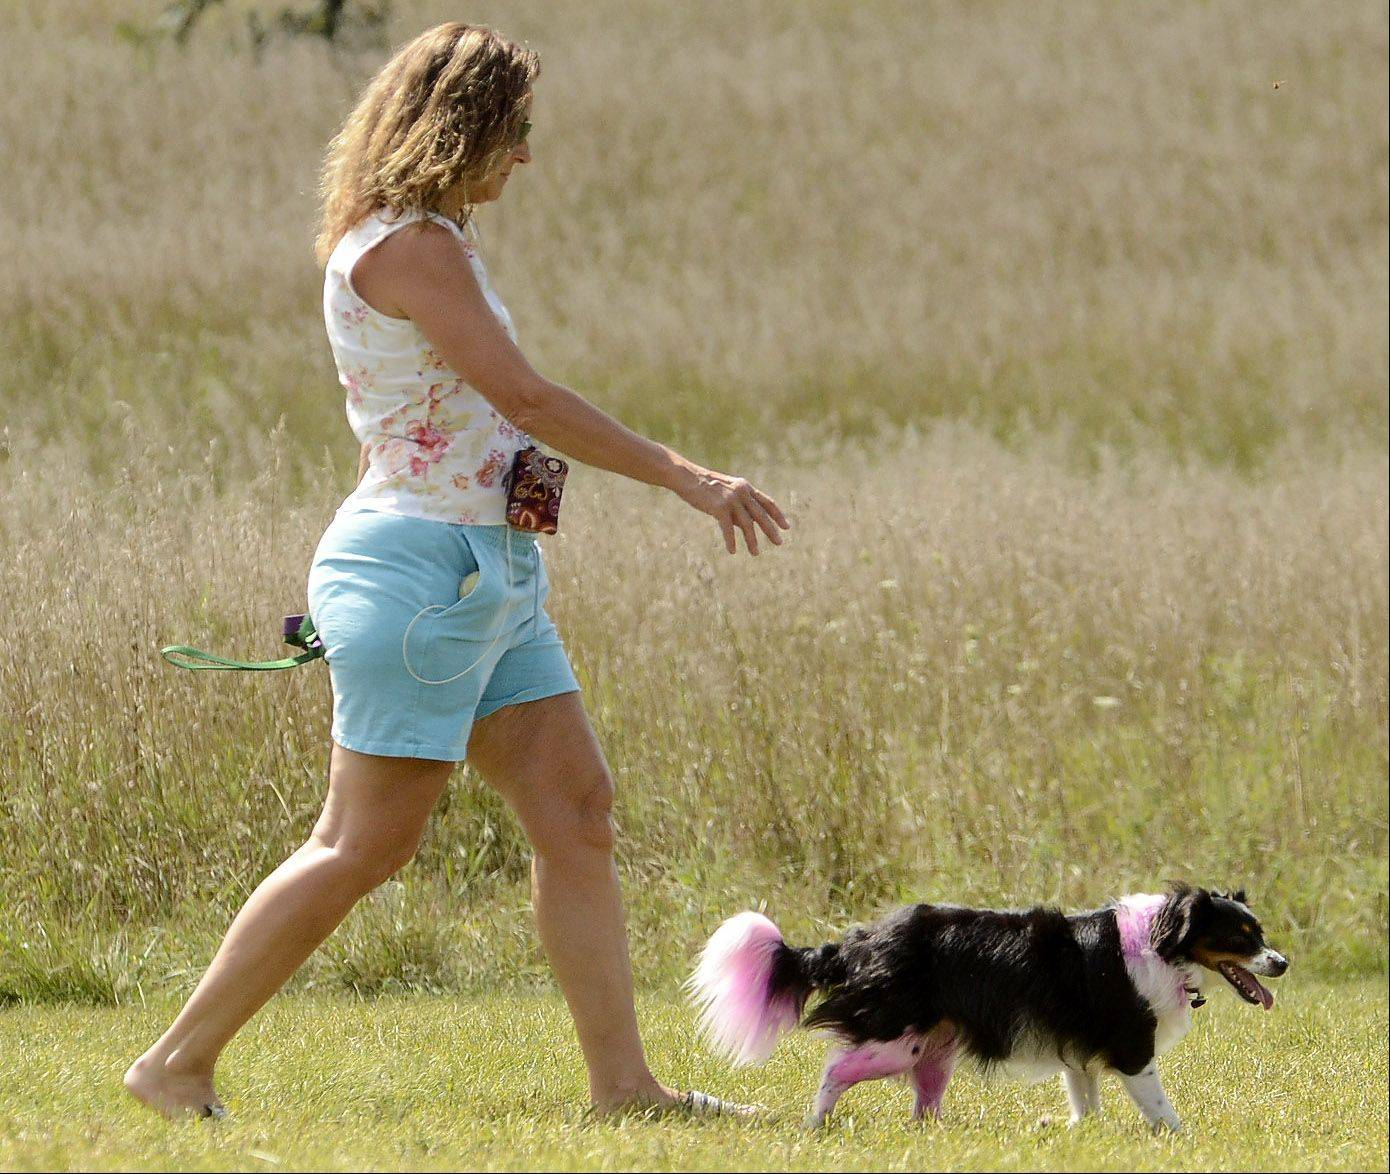 Jill Cooper, of Wauconda, walks her daughter's dog, Puddles, in the Lakewood Dog Exercise Area. Jill's daughter Kristen fosters and rescues dogs from shelters. Kristen also decided it would be a good idea to use some leftover hair dye to color Puddles pink.